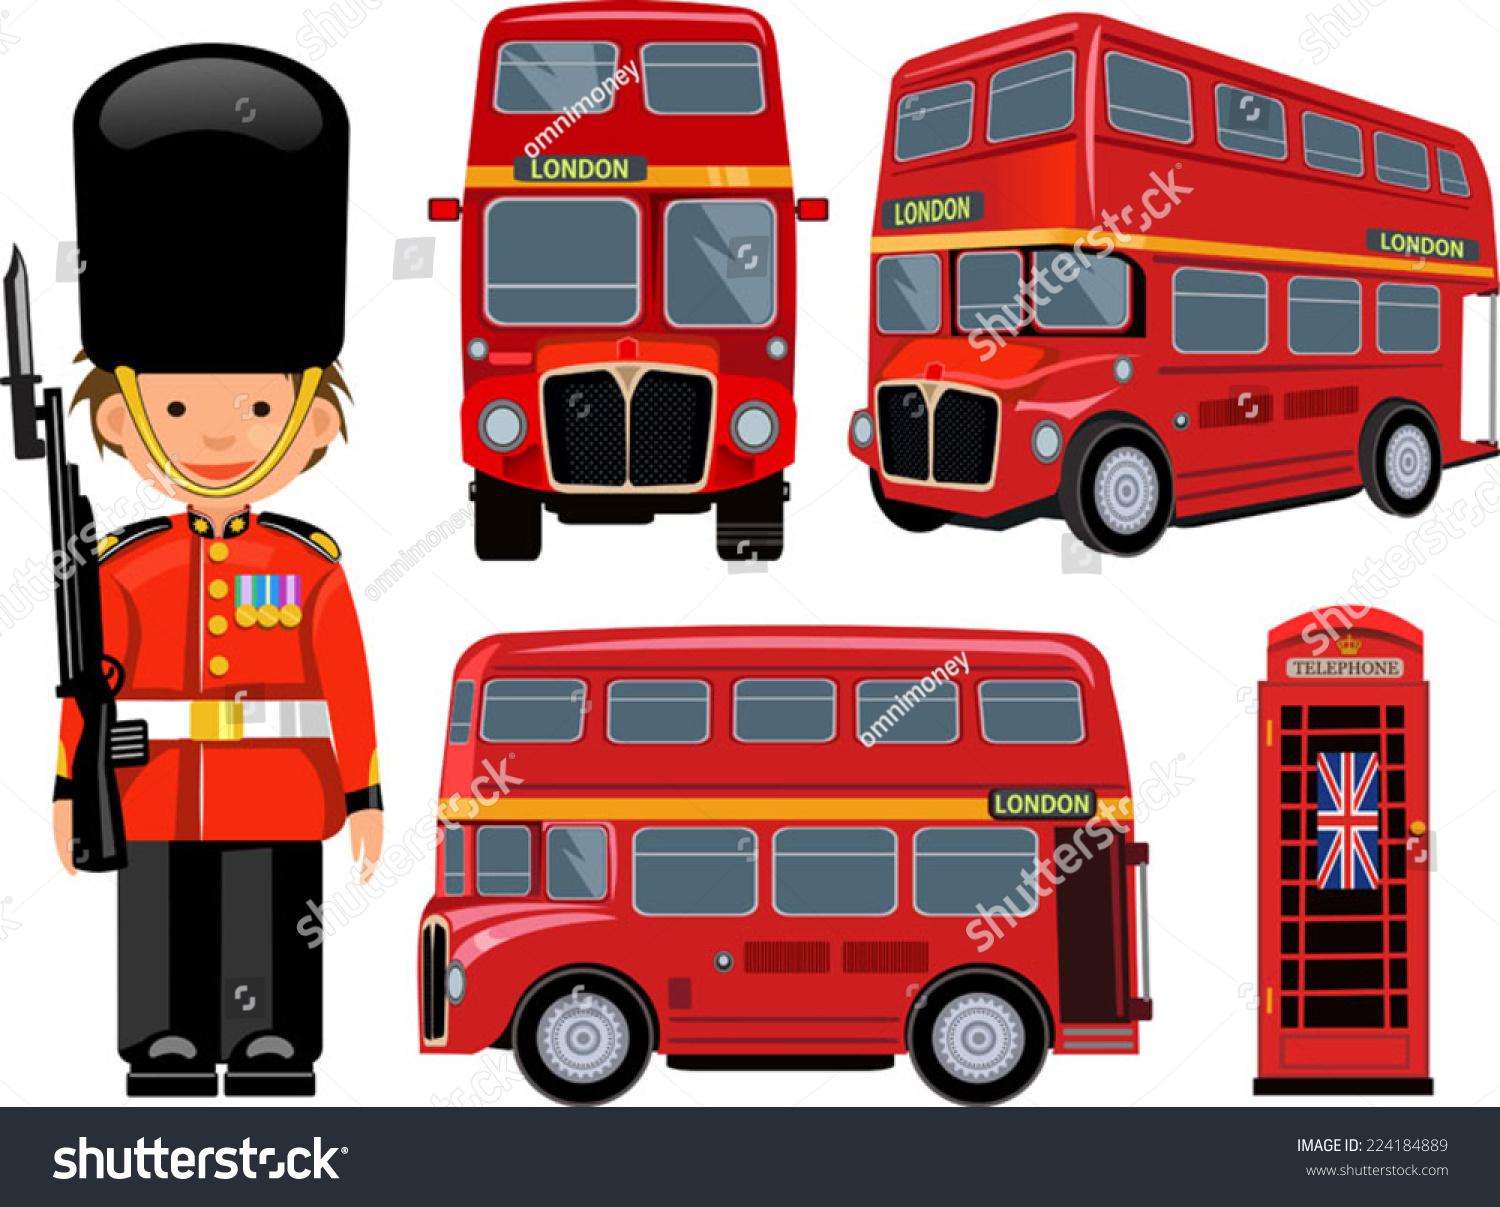 Royal Guard London Bus Stock Vector 224184889 - Shutterstock